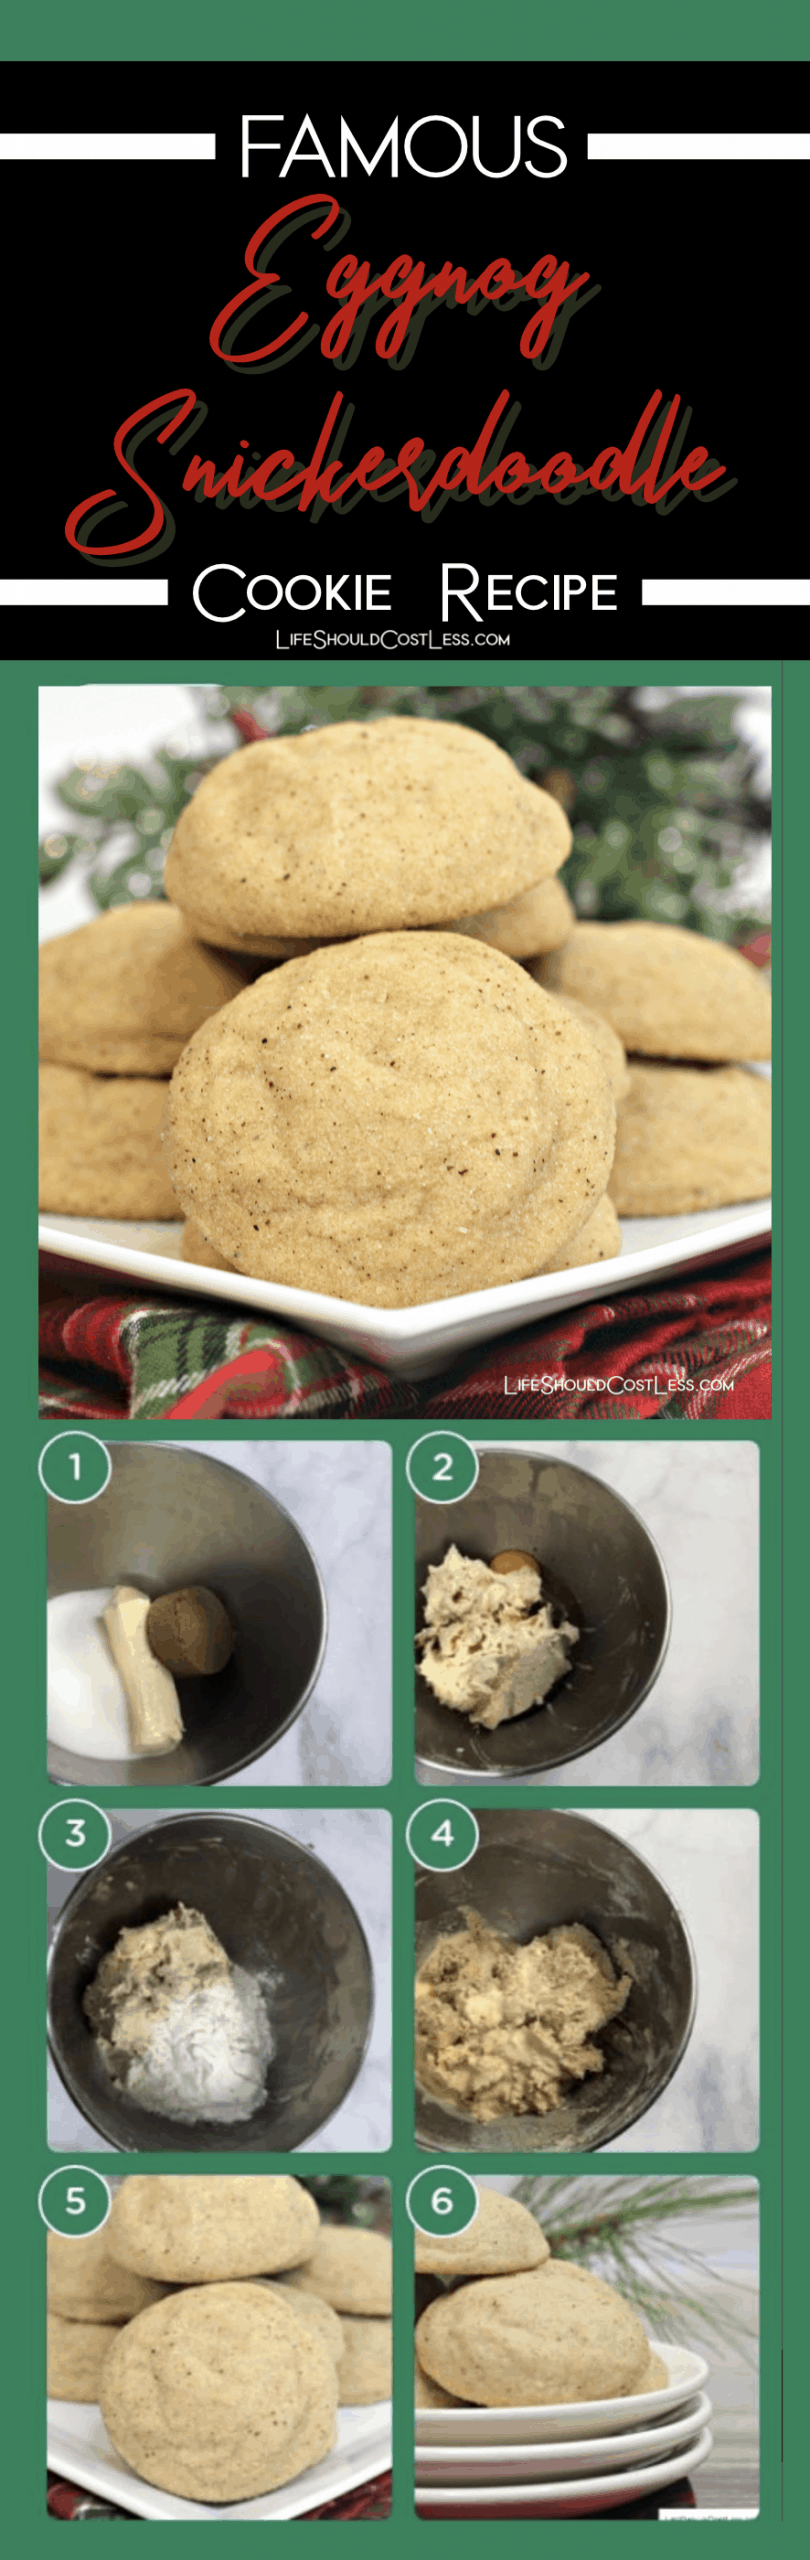 famous eggnog snickerdoodles found on lifeshouldcostless.com